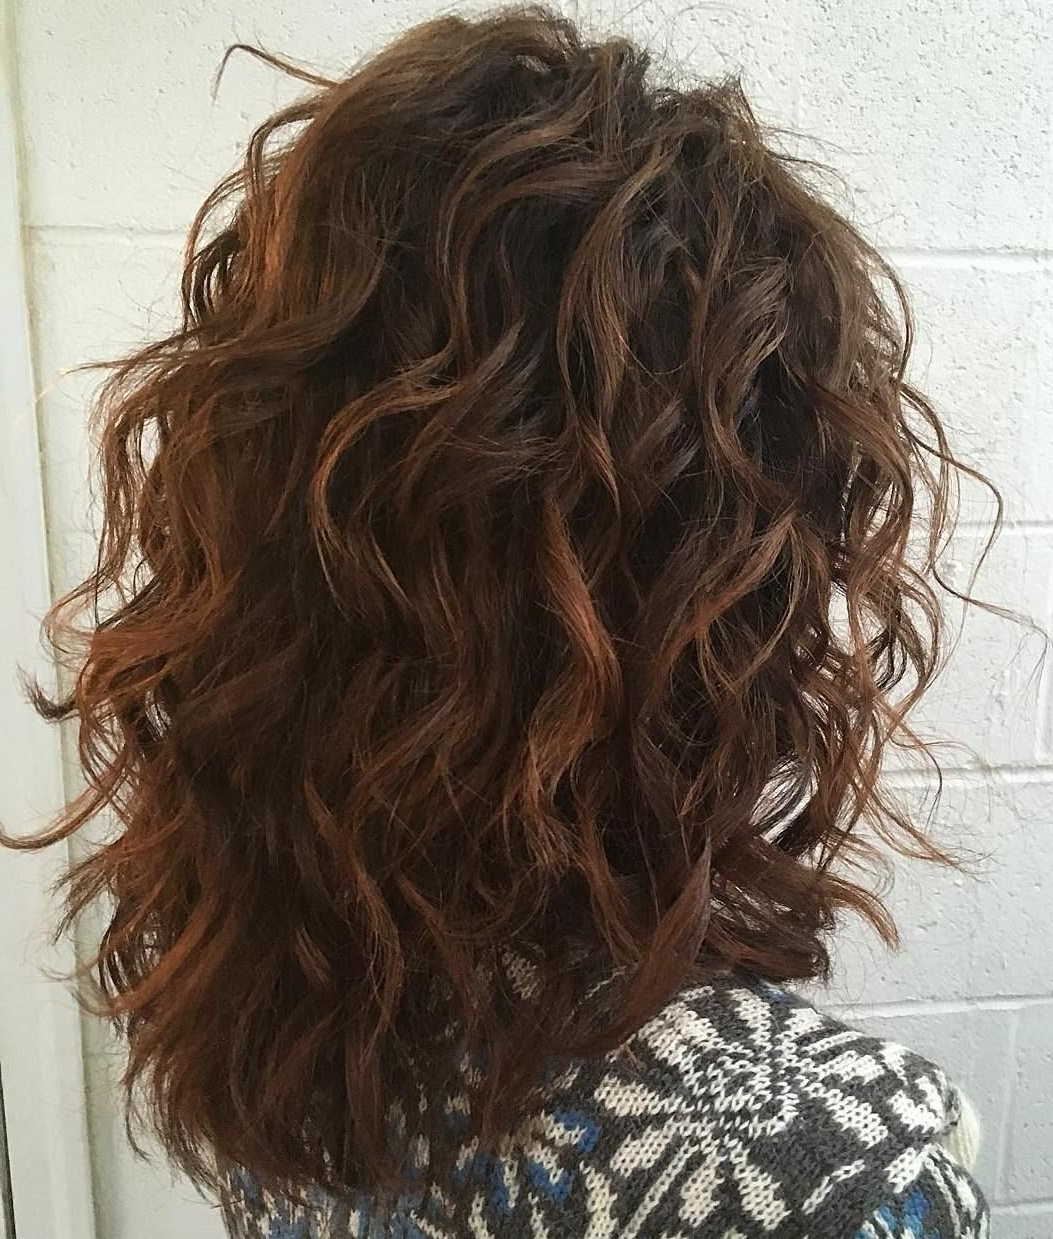 Curly Girly With Regard To Most Popular Wavy Curly Medium Hairstyles (View 2 of 20)